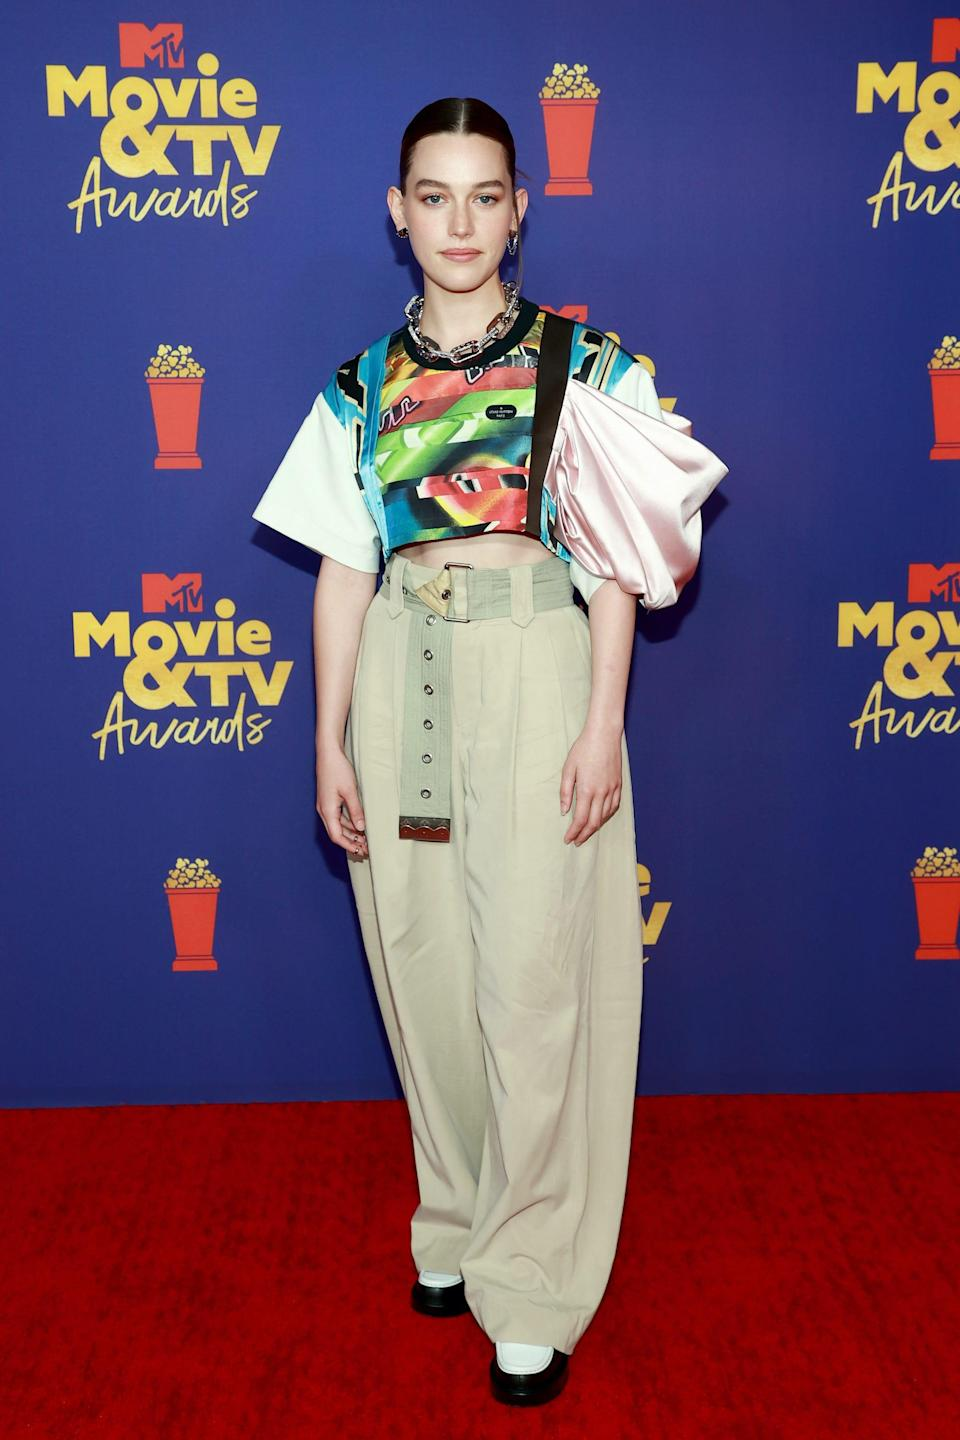 Victoria Pedretti at the 2021 MTV Movie Awards on May 16